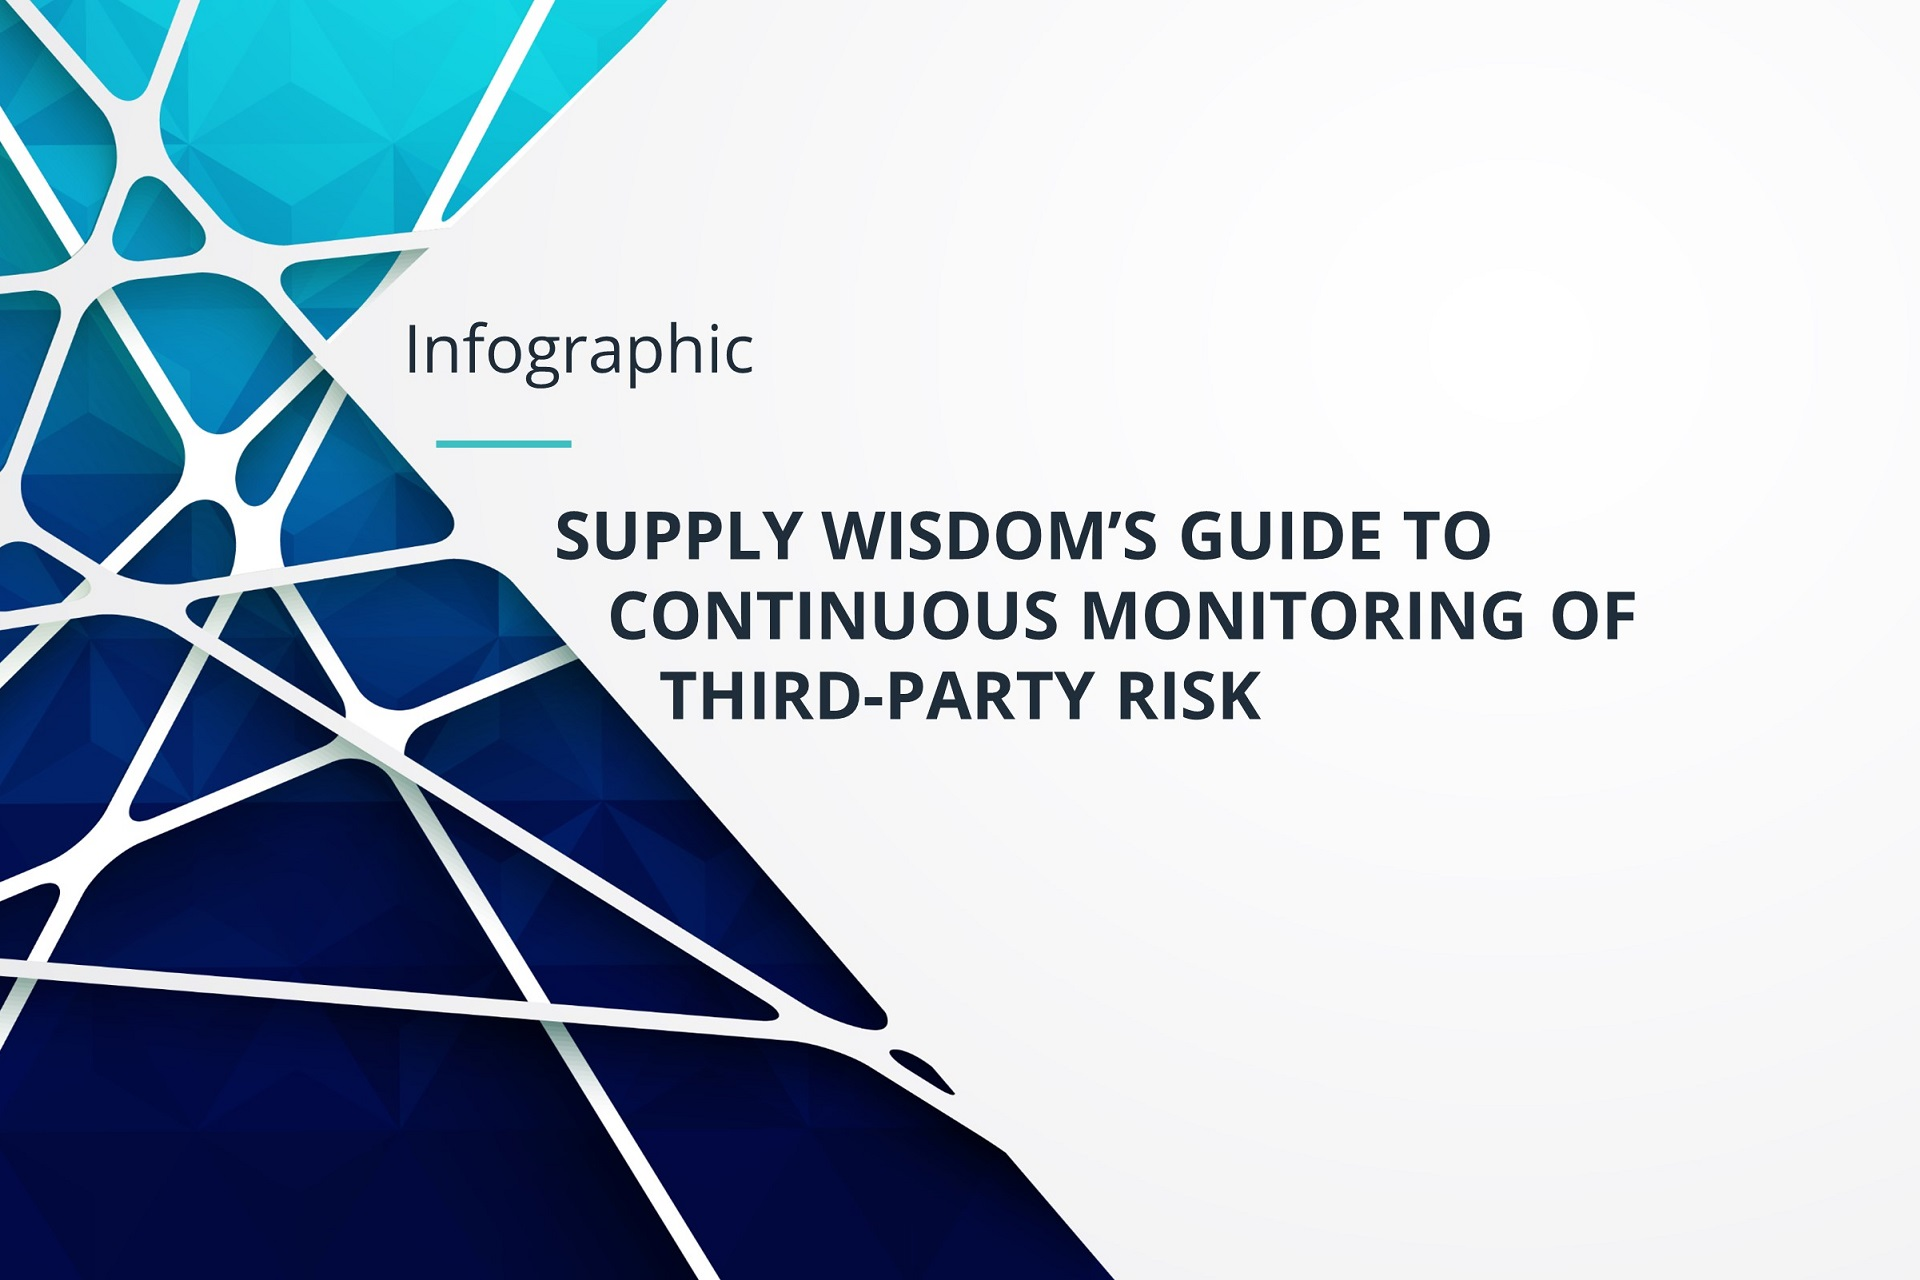 Supply Wisdom Continuous Third-party Risk Monitoring Infographic